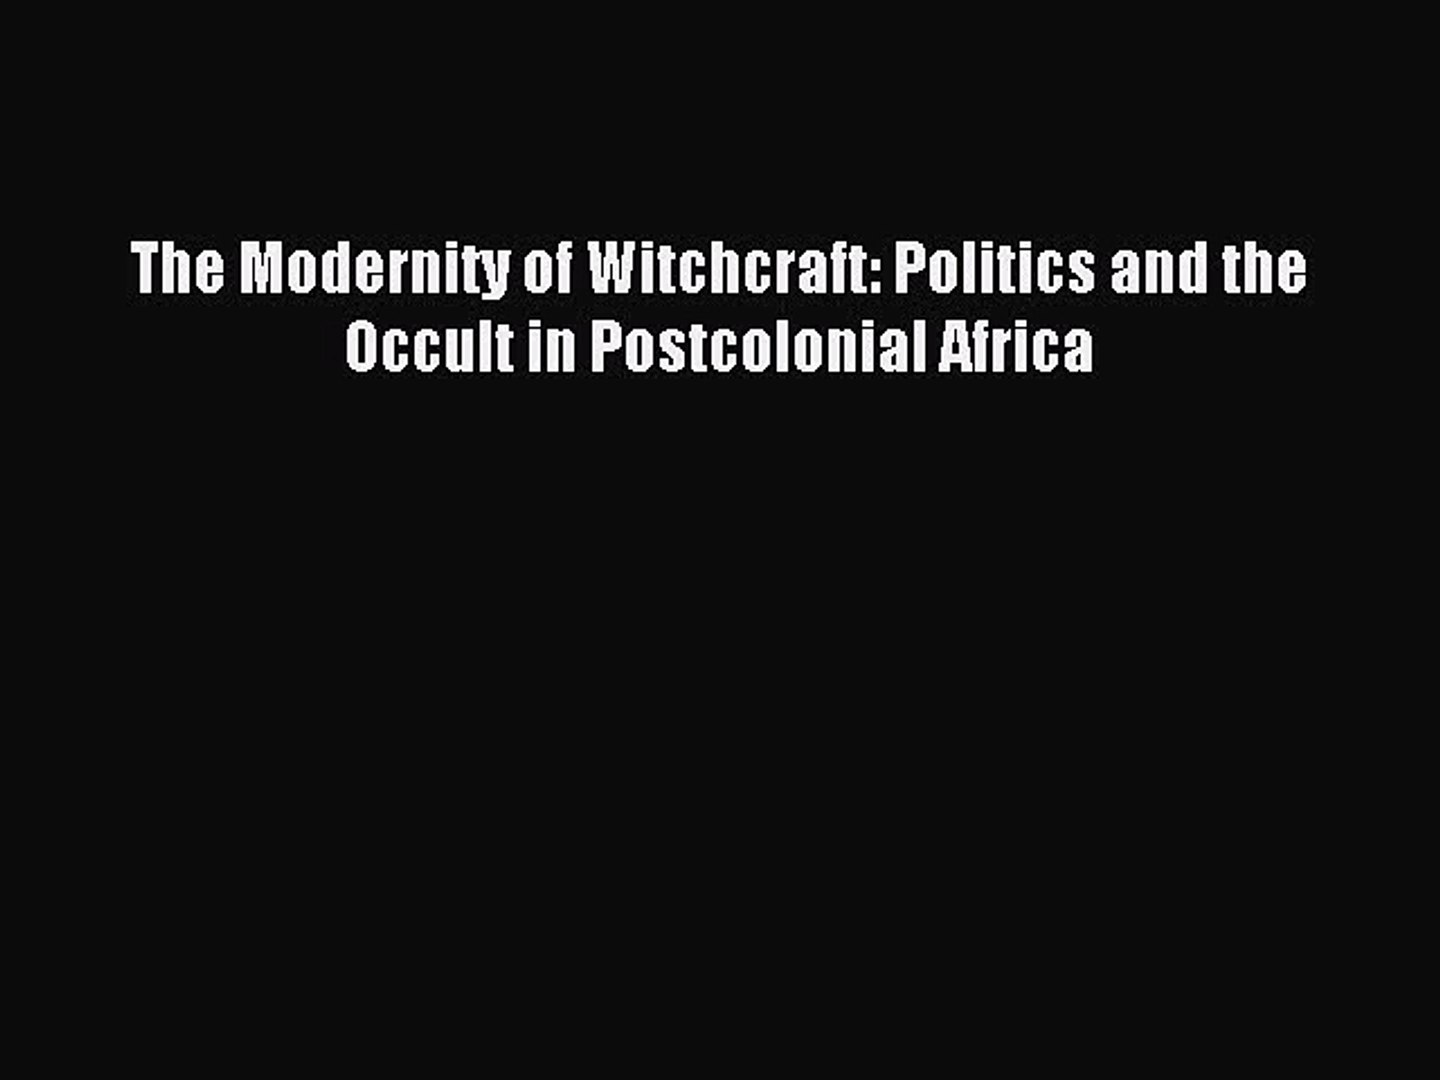 Read The Modernity of Witchcraft: Politics and the Occult in Postcolonial Africa Ebook Free